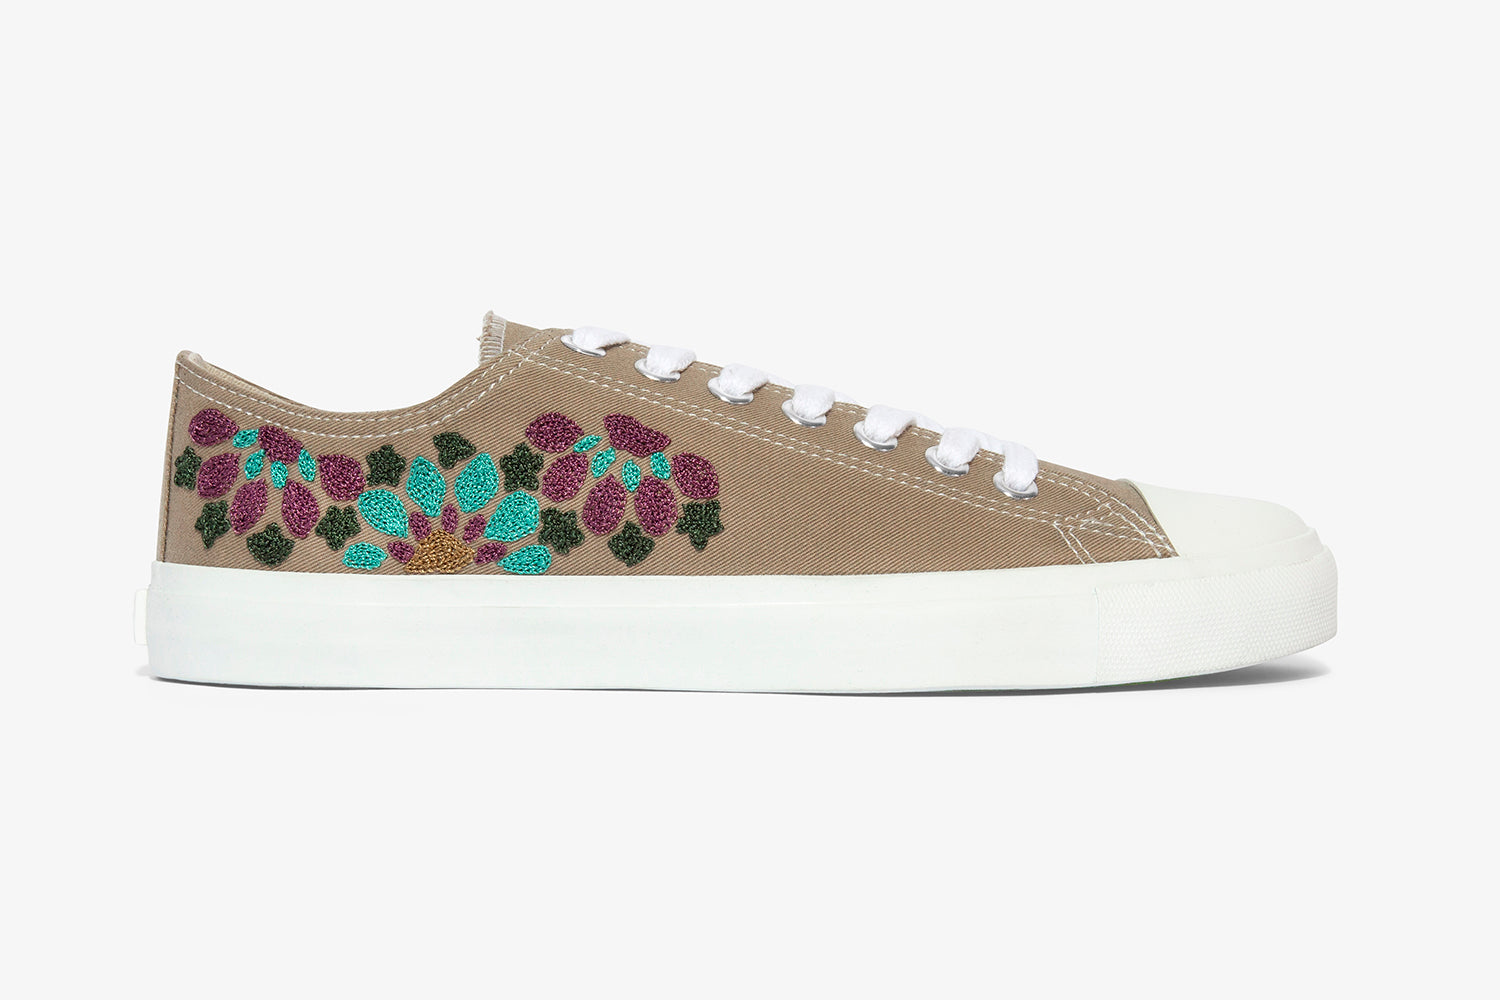 Vegan shoes unisex low top with hand embroidery